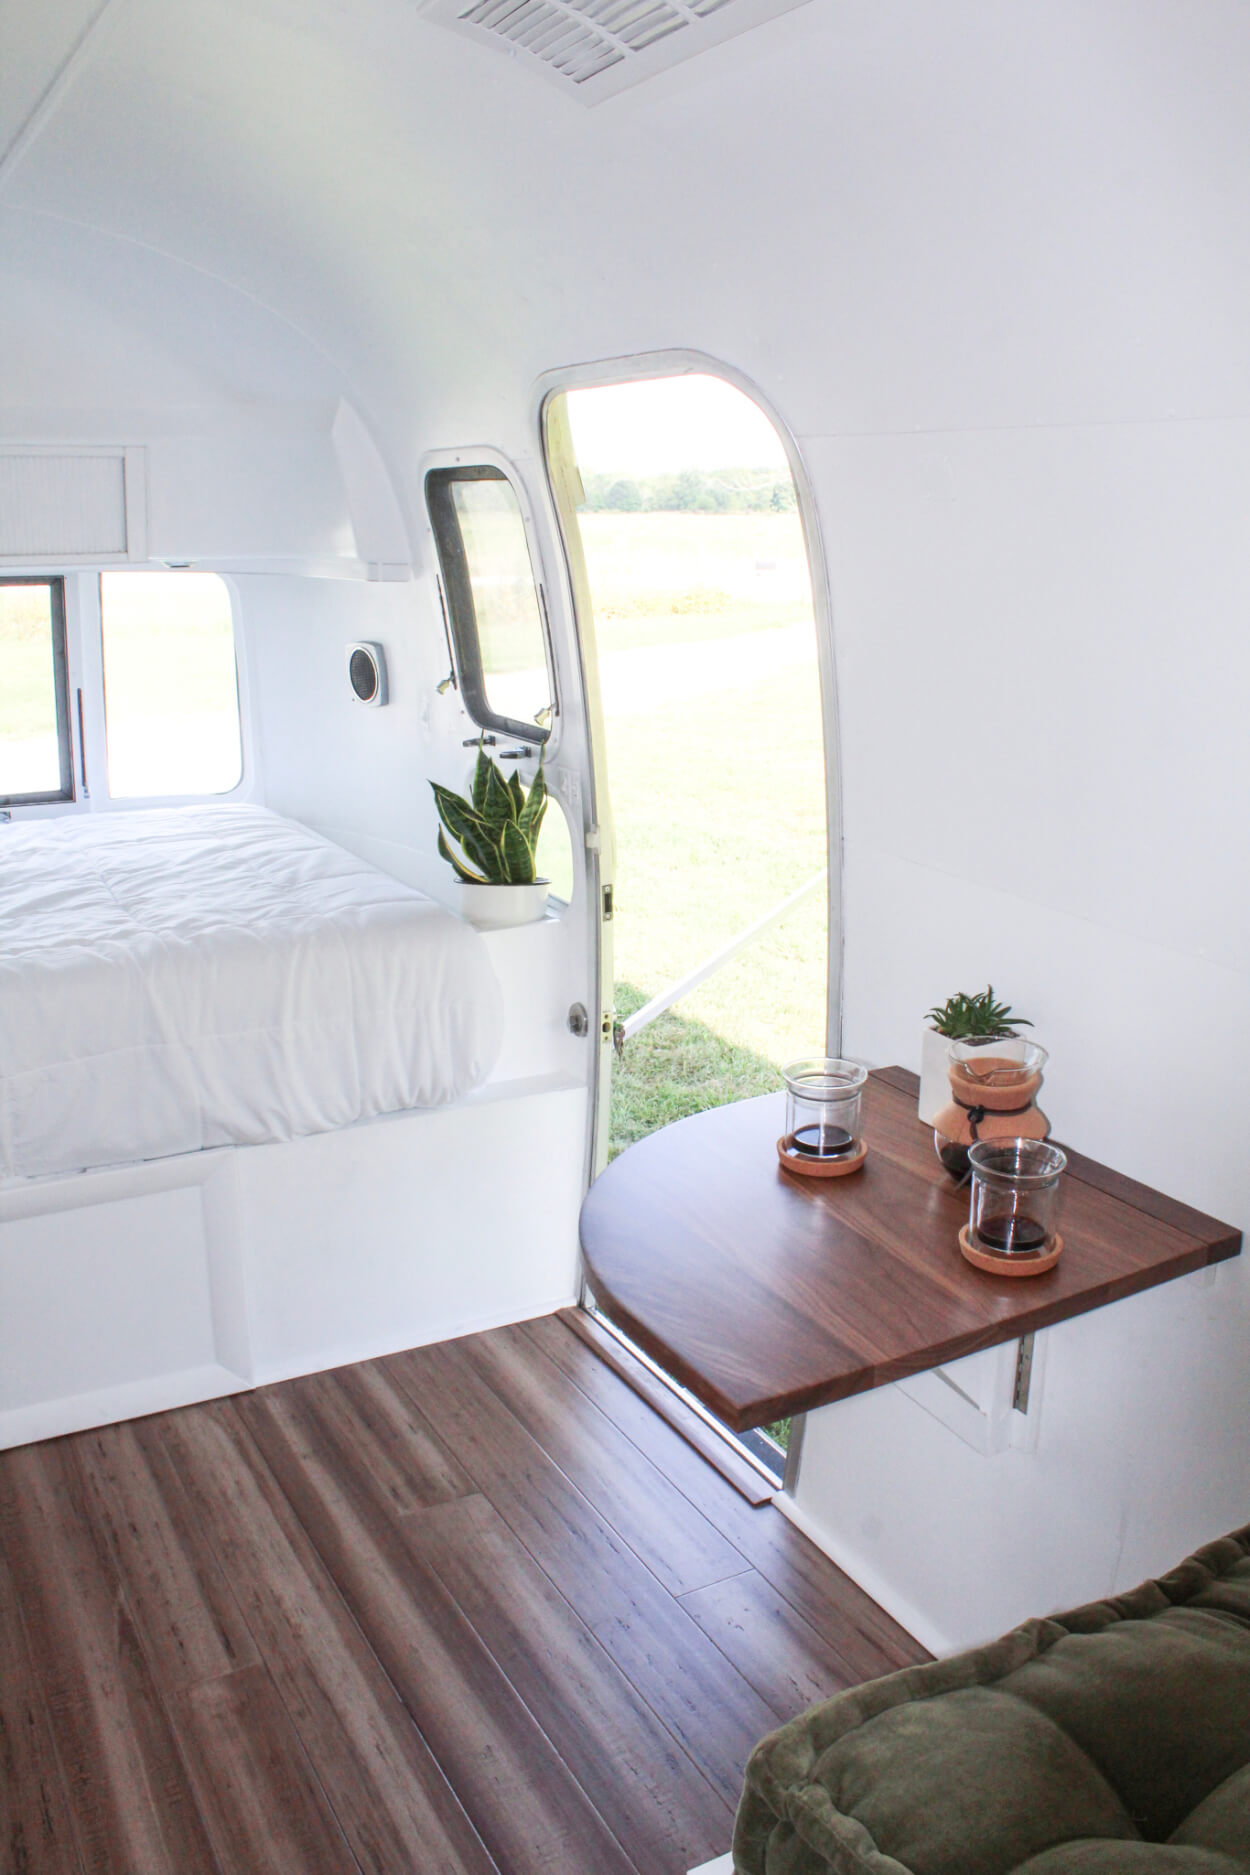 Mattox the Airstream7